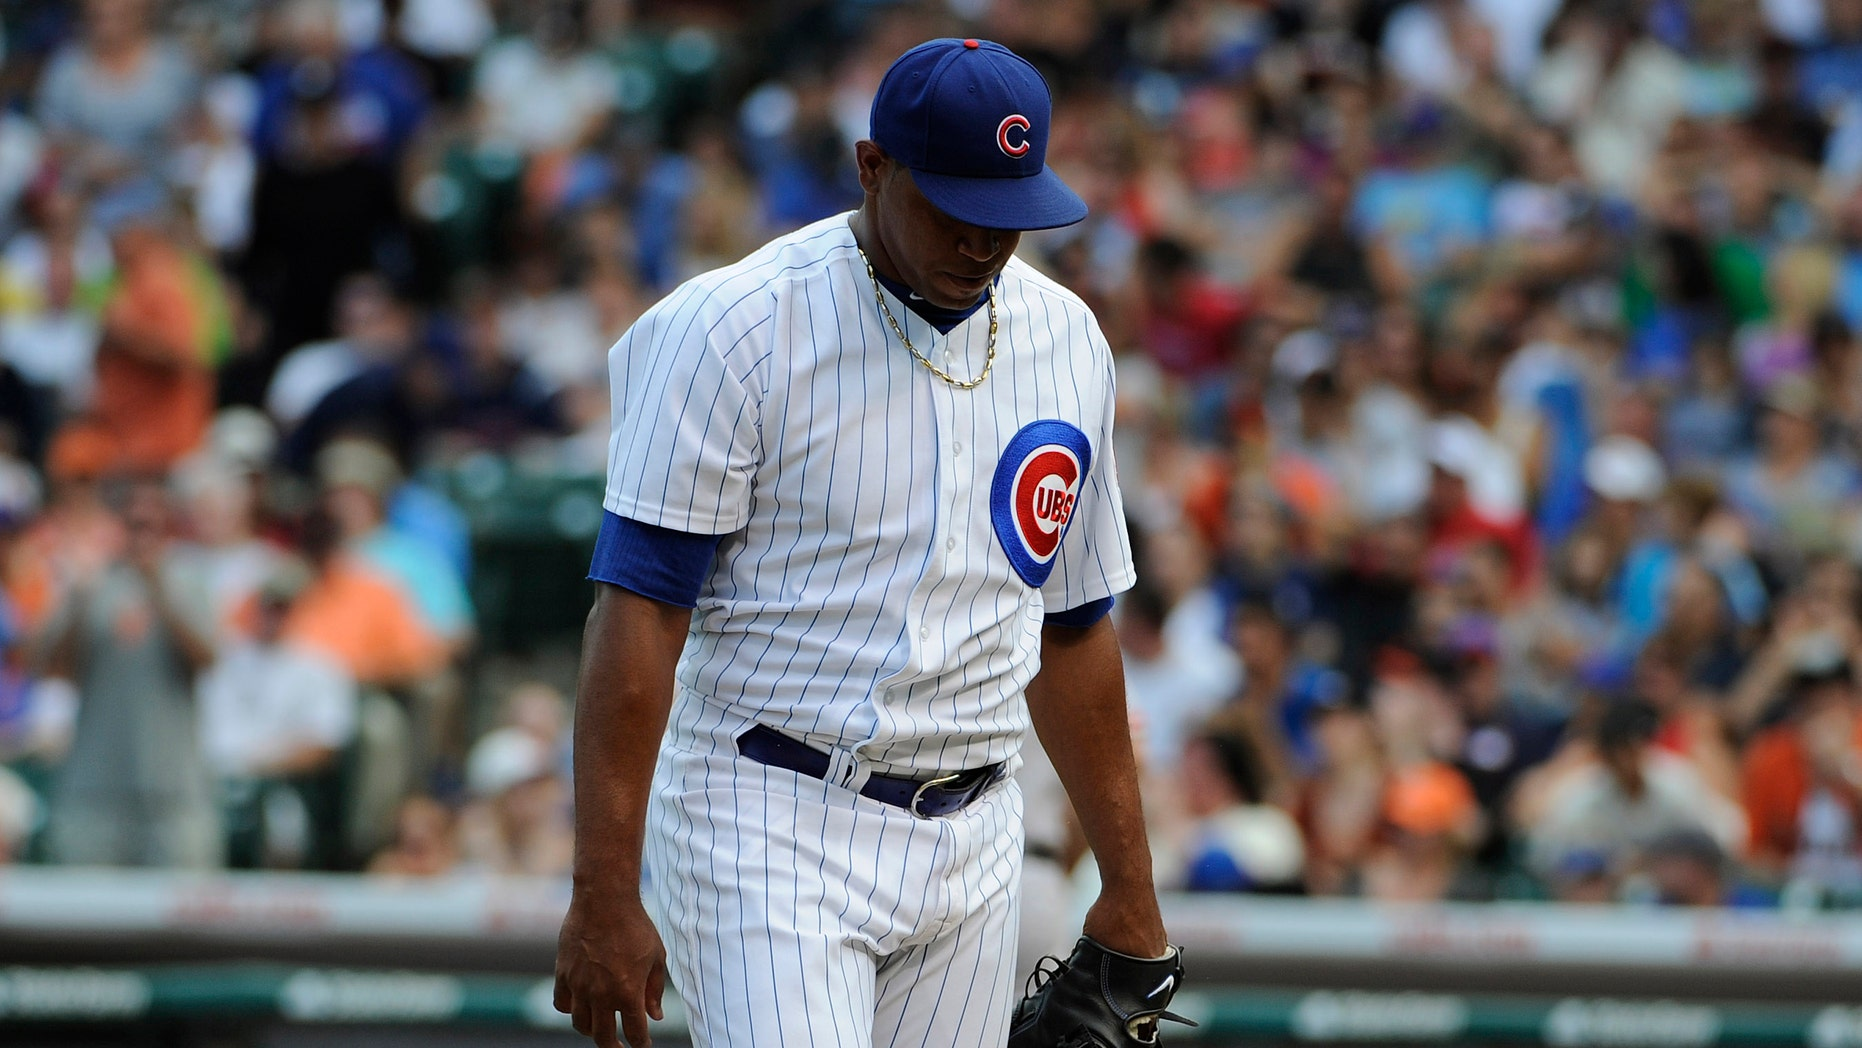 Carlos Marmol #49 of the Chicago Cubs walks of the mound. (Photo by David Banks/Getty Images)